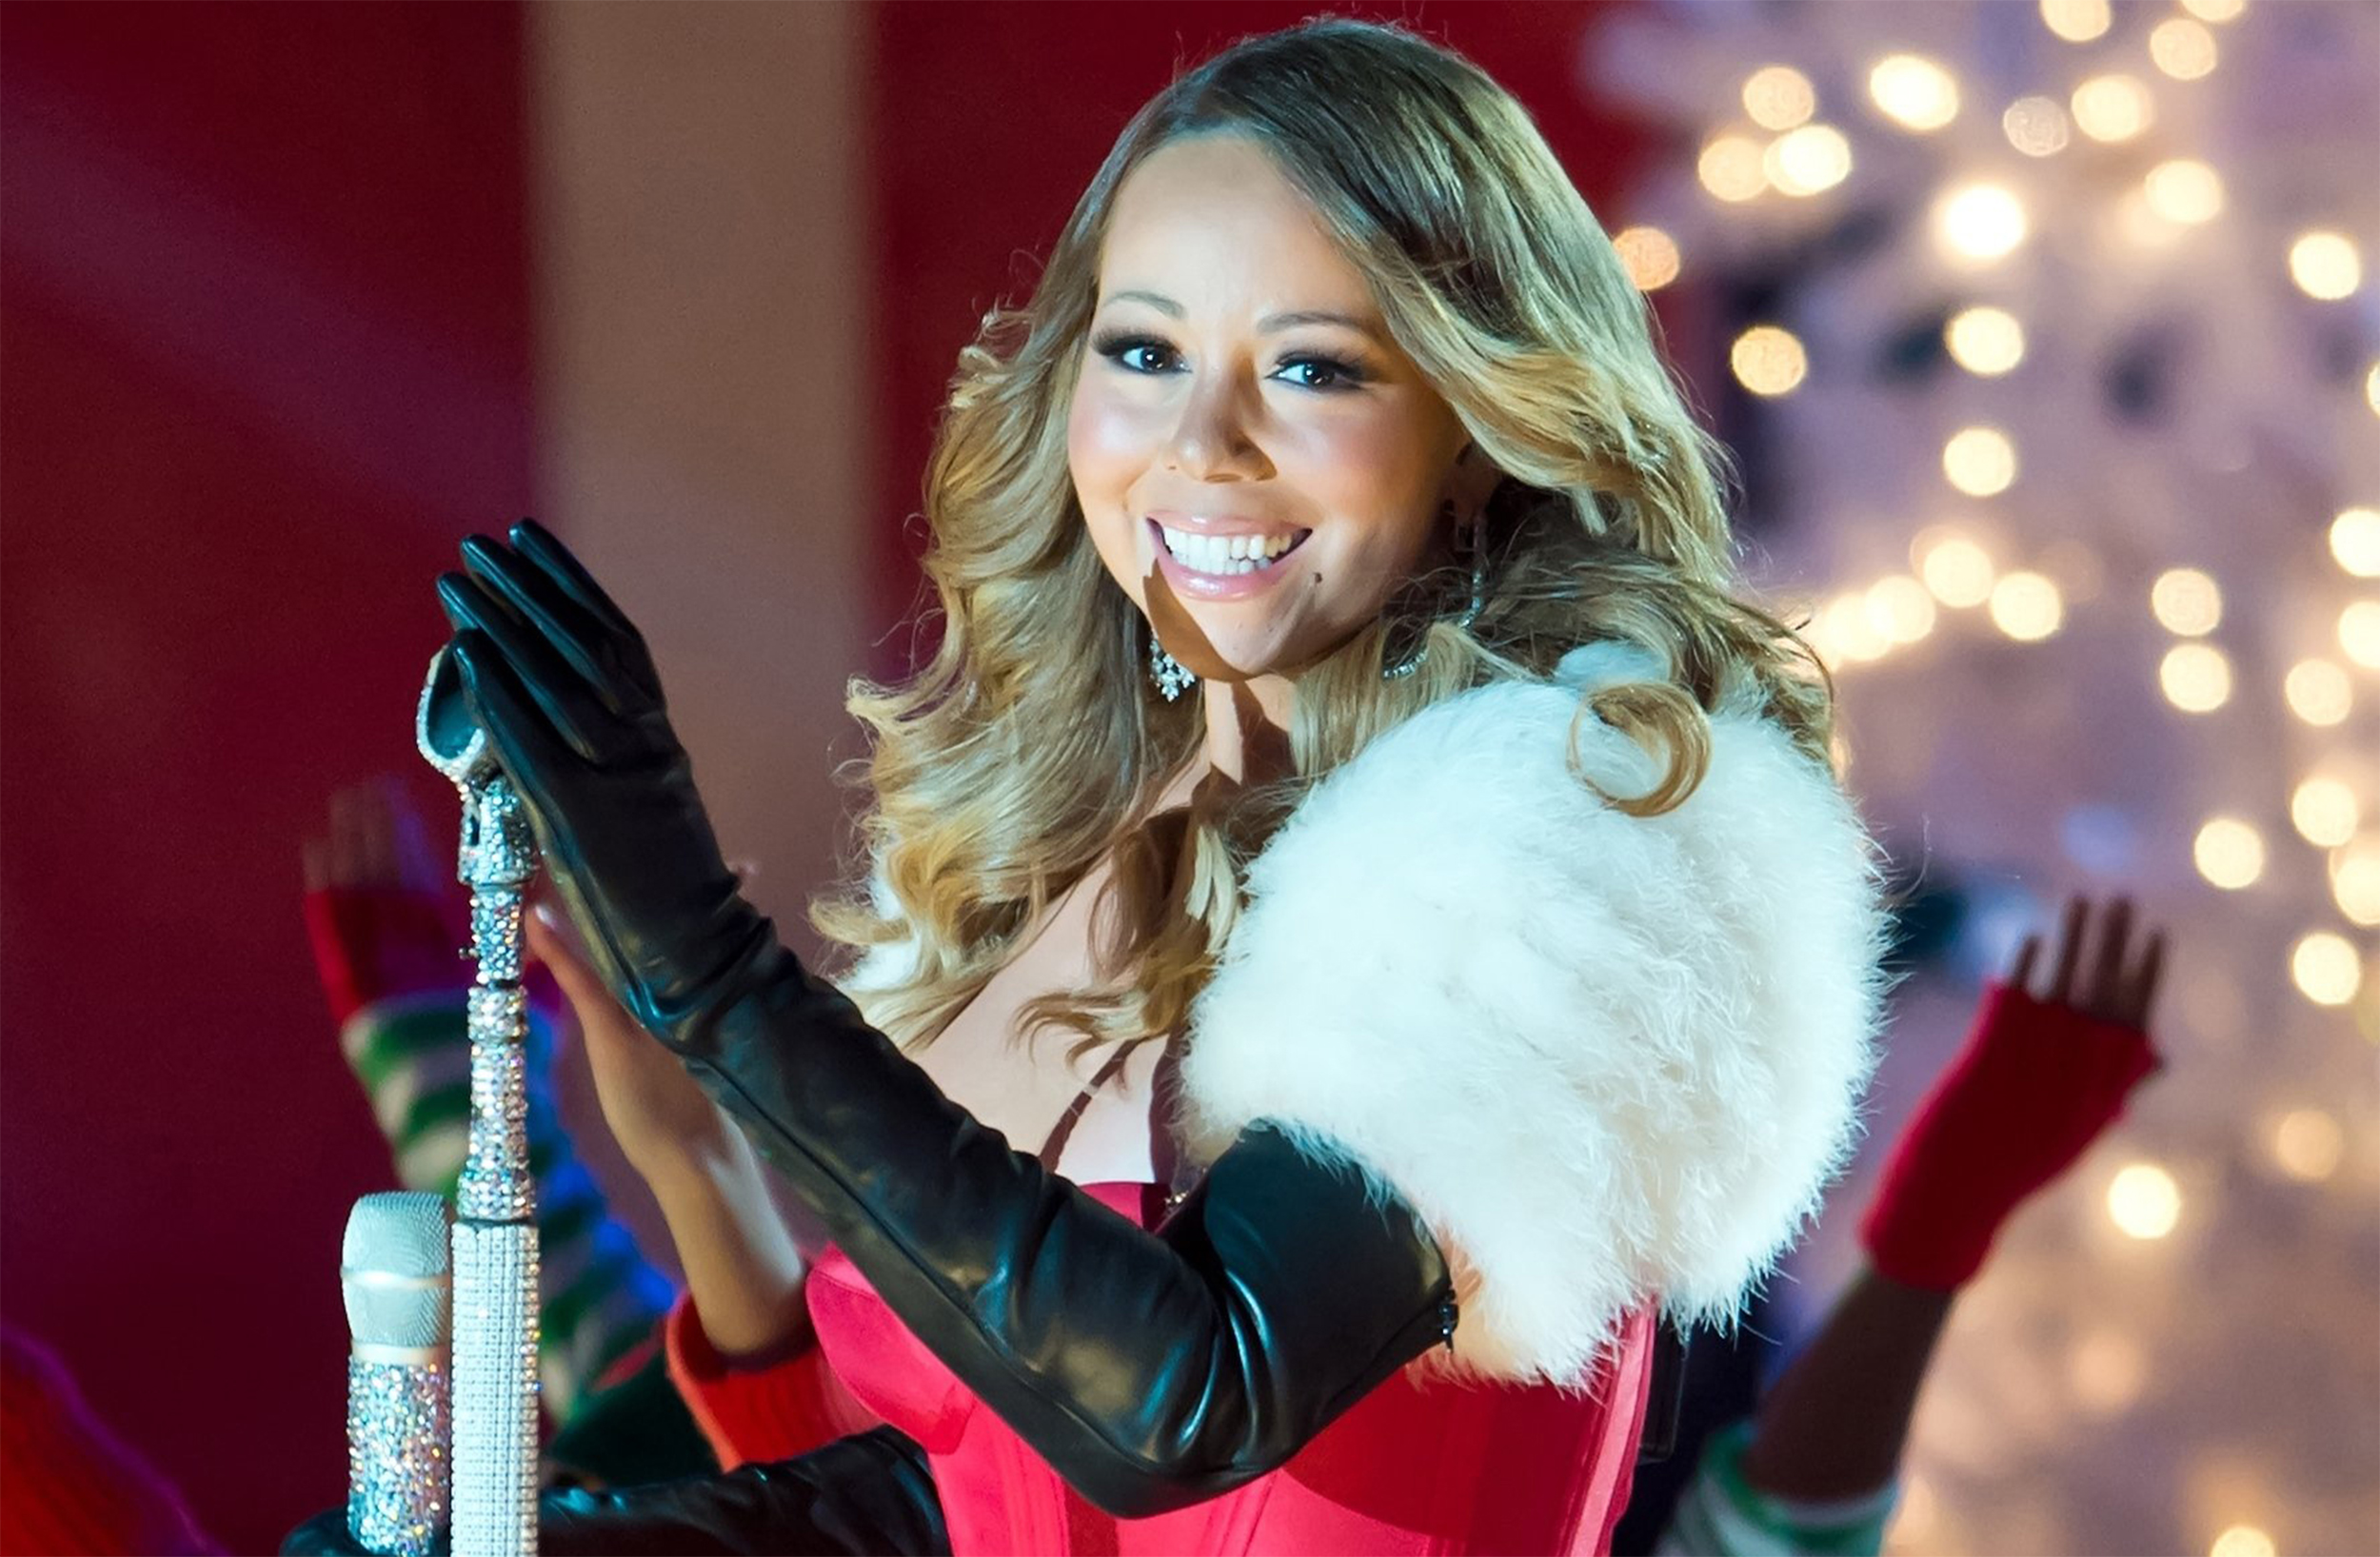 Mariah Carey All I Want For Christmas Is You Lyrics.Mariah Carey S All I Want For Christmas Is You Is The Best